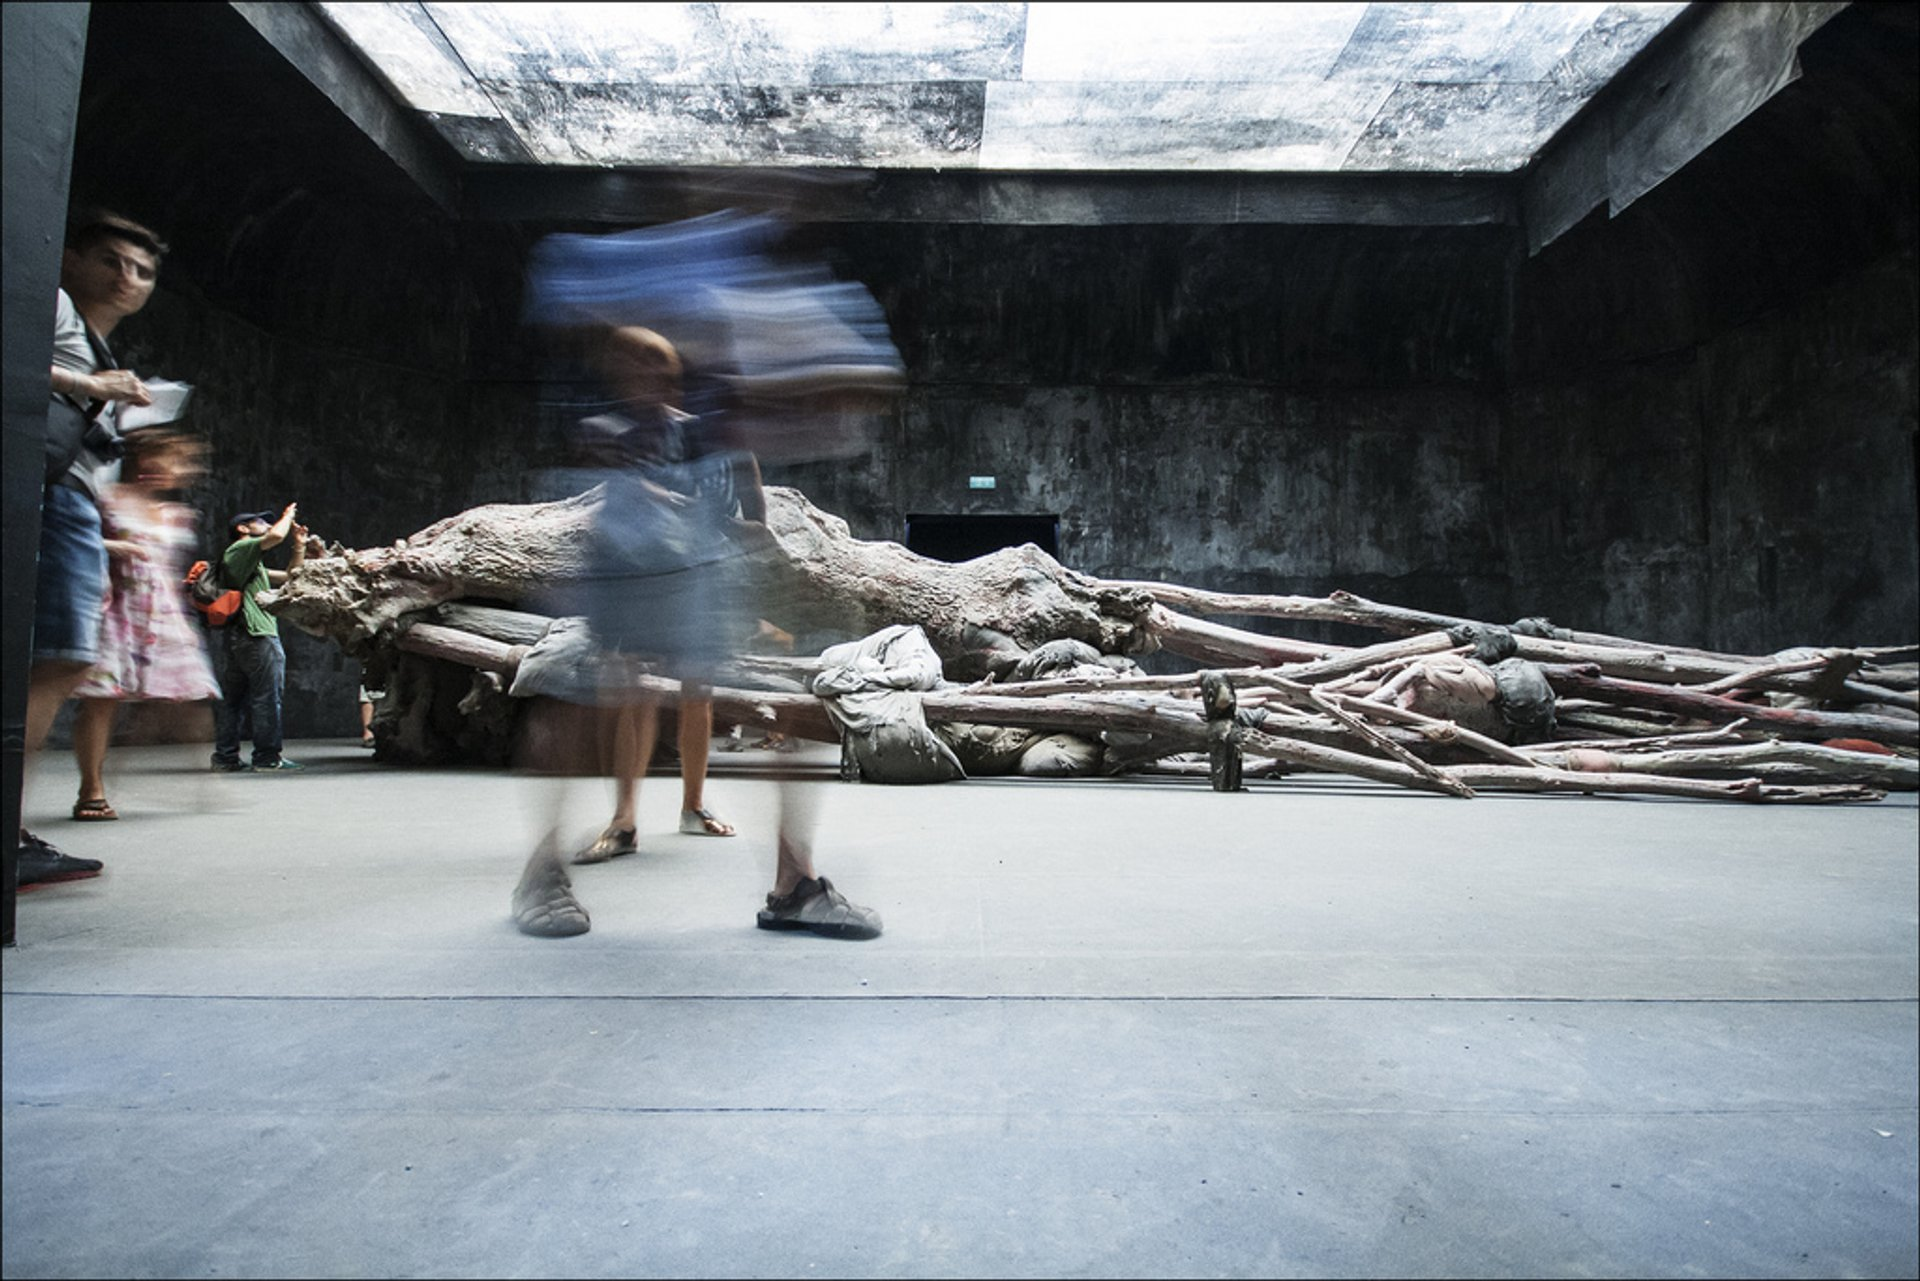 Best time for La Biennale di Venezia (Venice Biennale) 2020